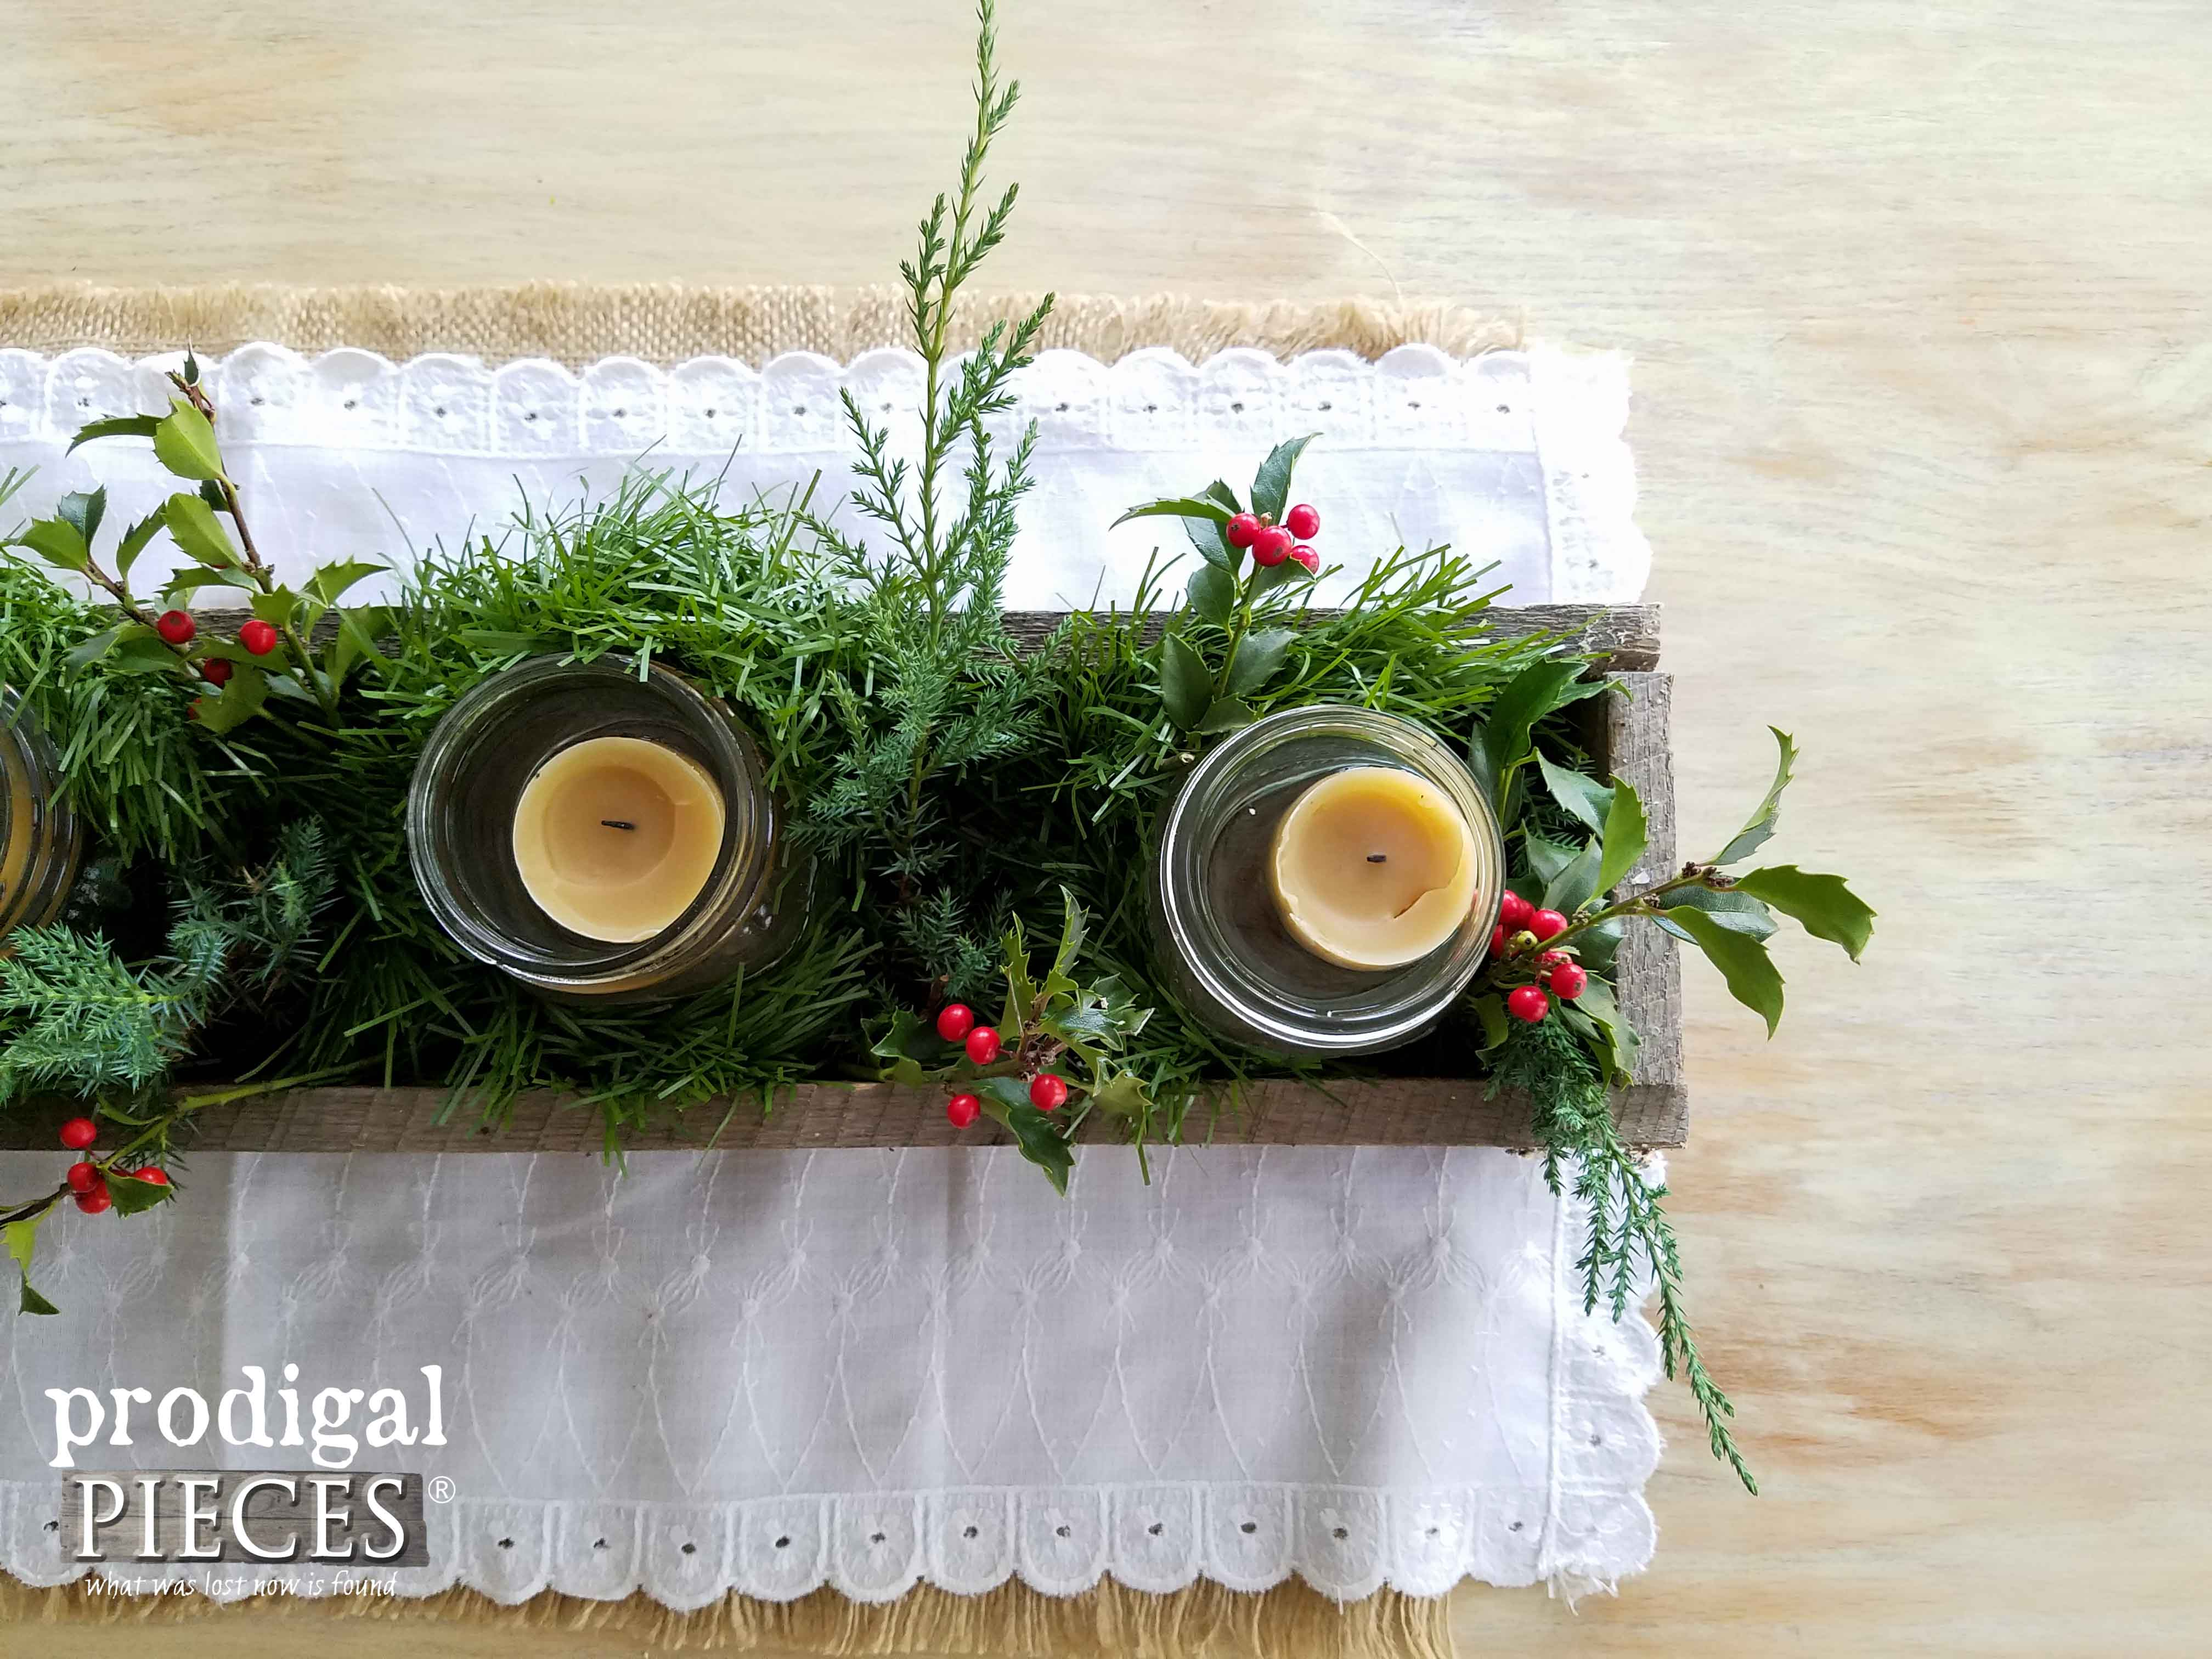 Simple Christmas Centerpiece with Pine and Holly, and Beeswax Candles in a Reclaimed Wood Trough by Prodigal Pieces | www.prodigalpieces.com